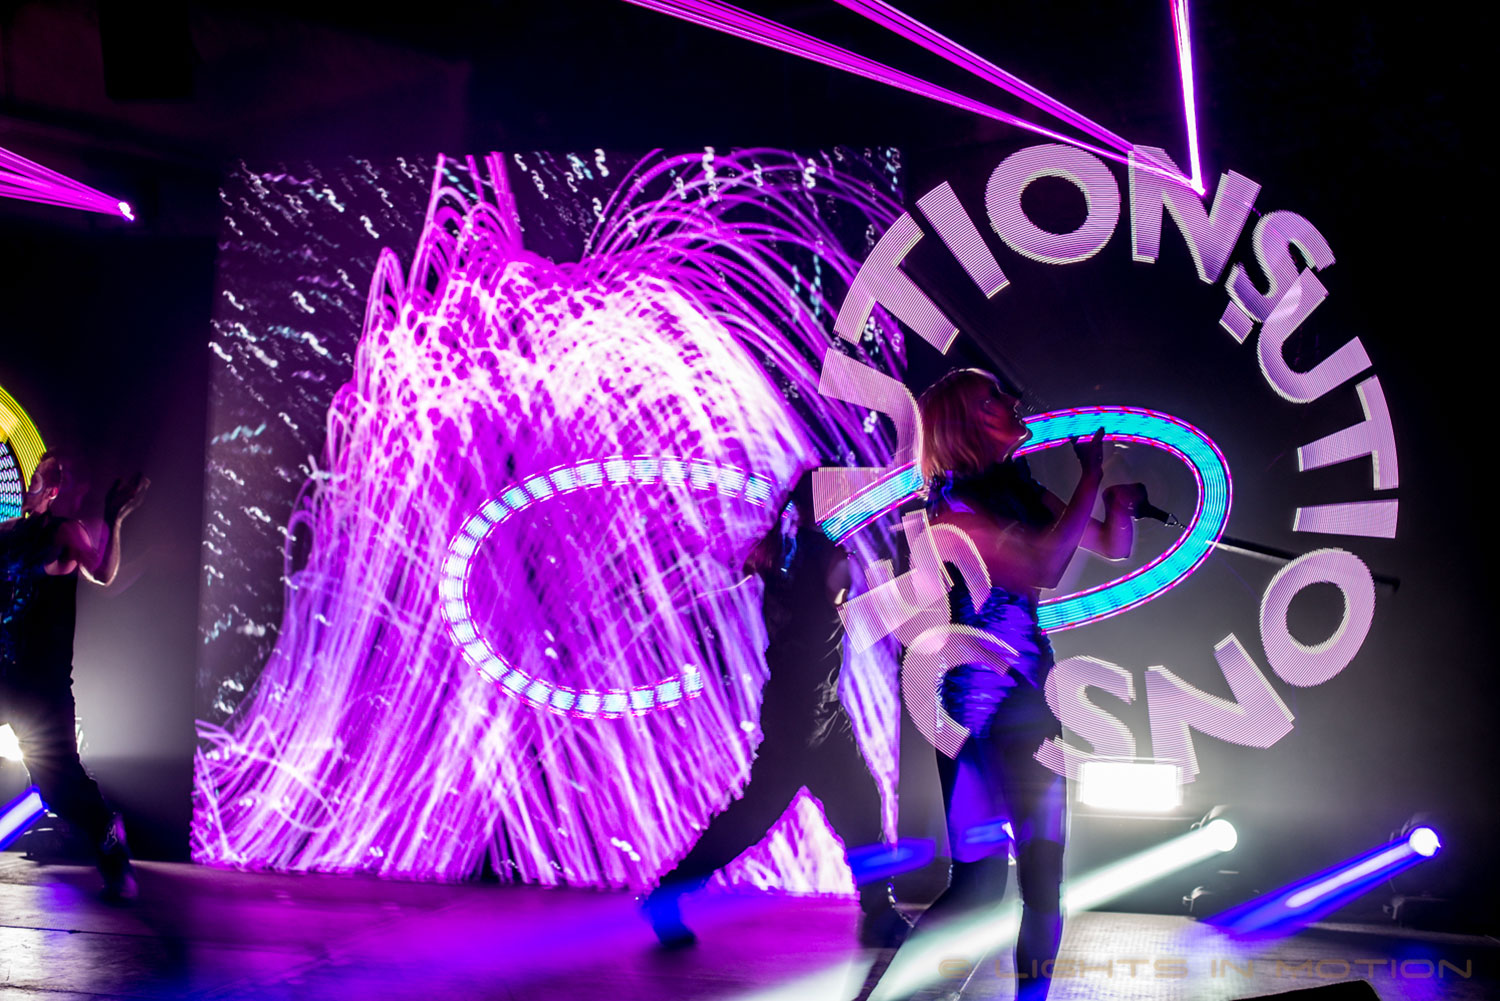 LED show Reflections met Visual Poi, LED Poi en LED scherm in de kleur paars